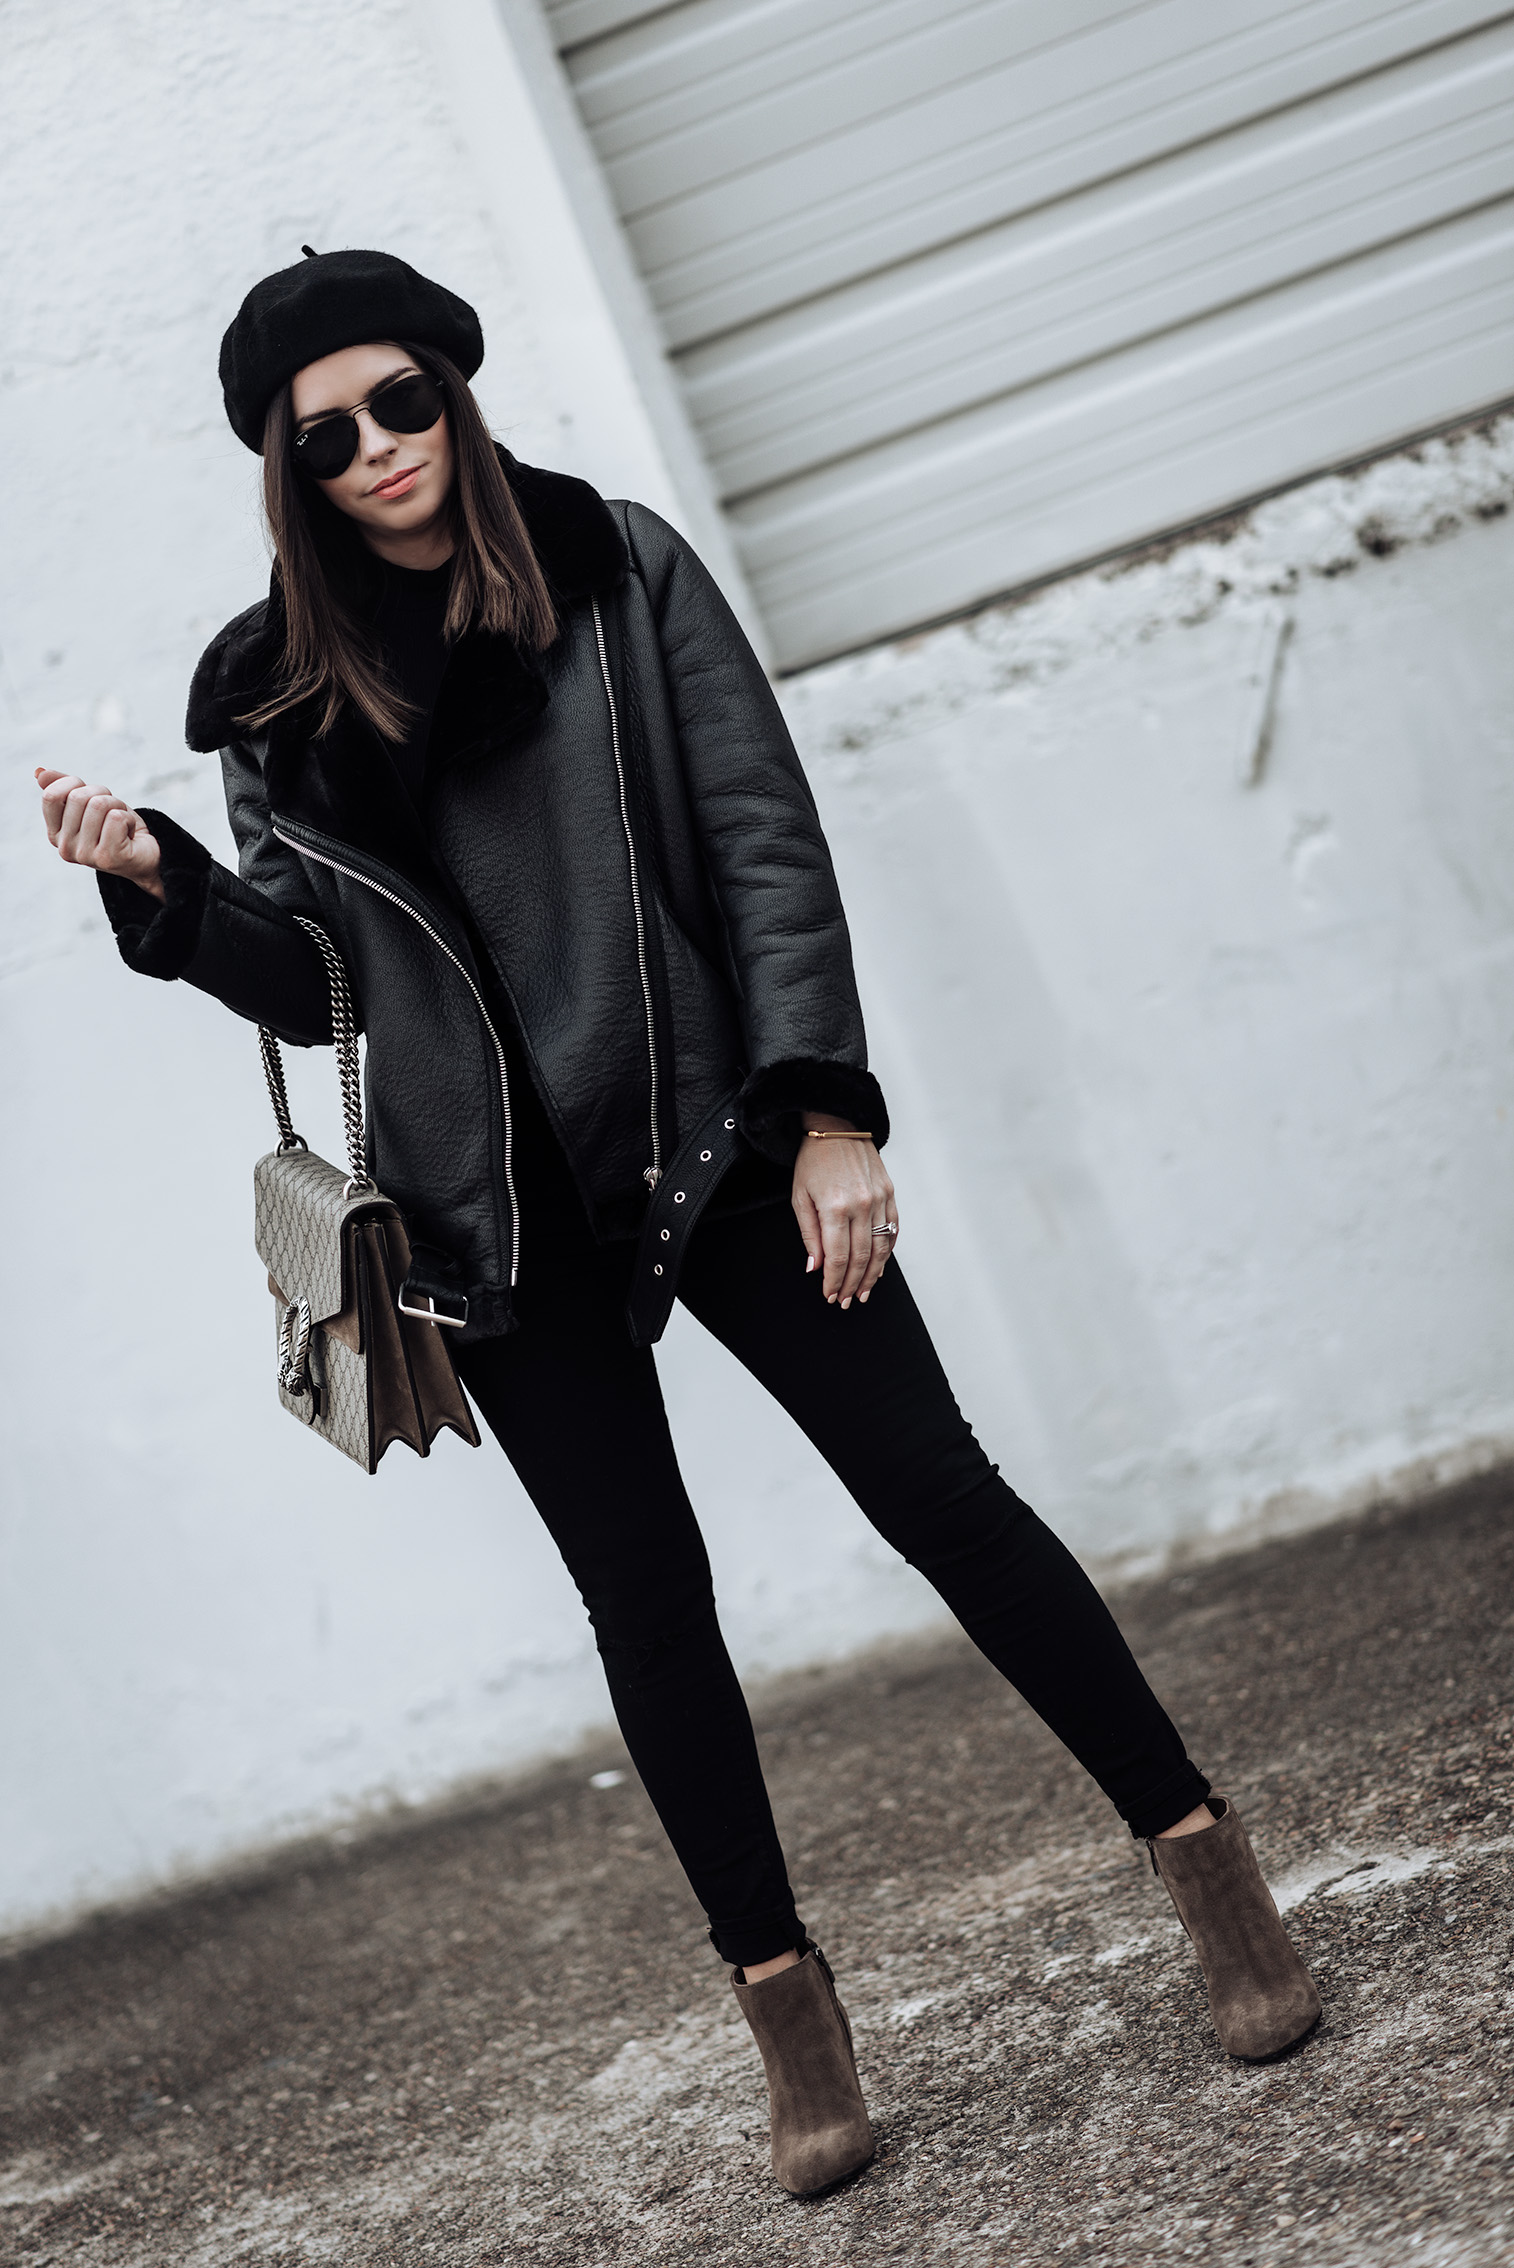 zappos and la canadienne | La Canadienne Donna Boot | Jacket | Jeans | Gucci Bag | Wool Beret| Top | #ankleboots #fallfashion #ootd #falloutfitideas